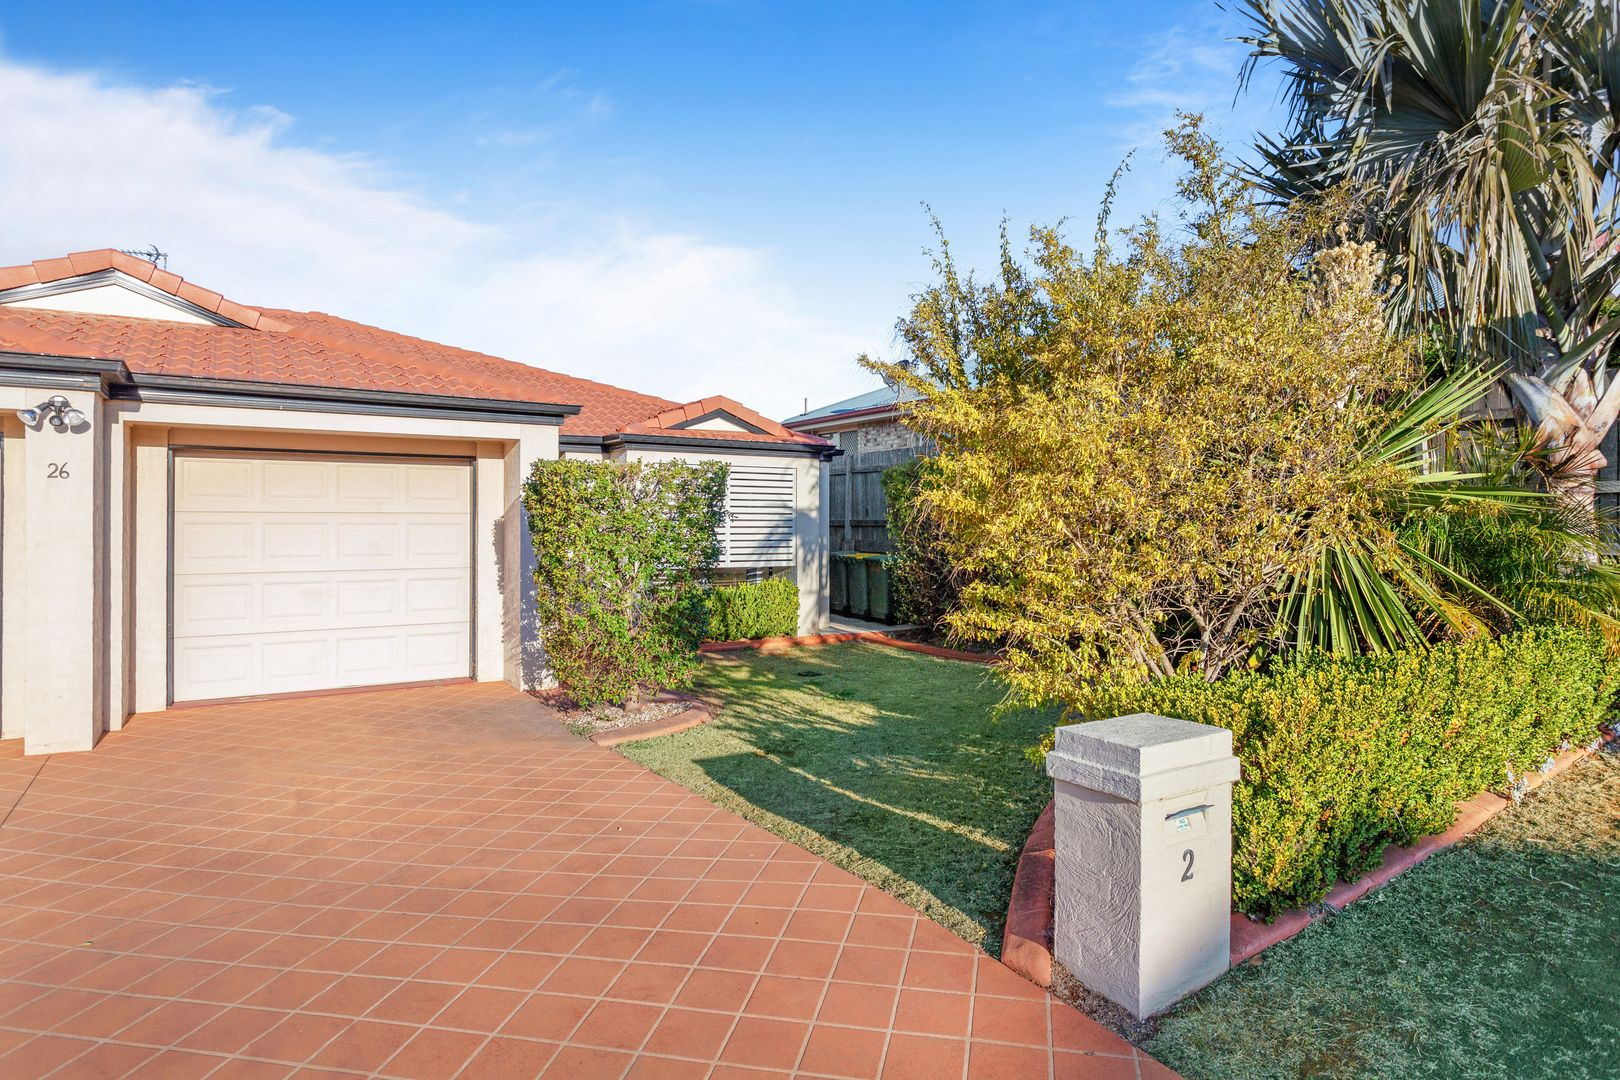 2/26 Hoepper Street, South Toowoomba QLD 4350, Image 0